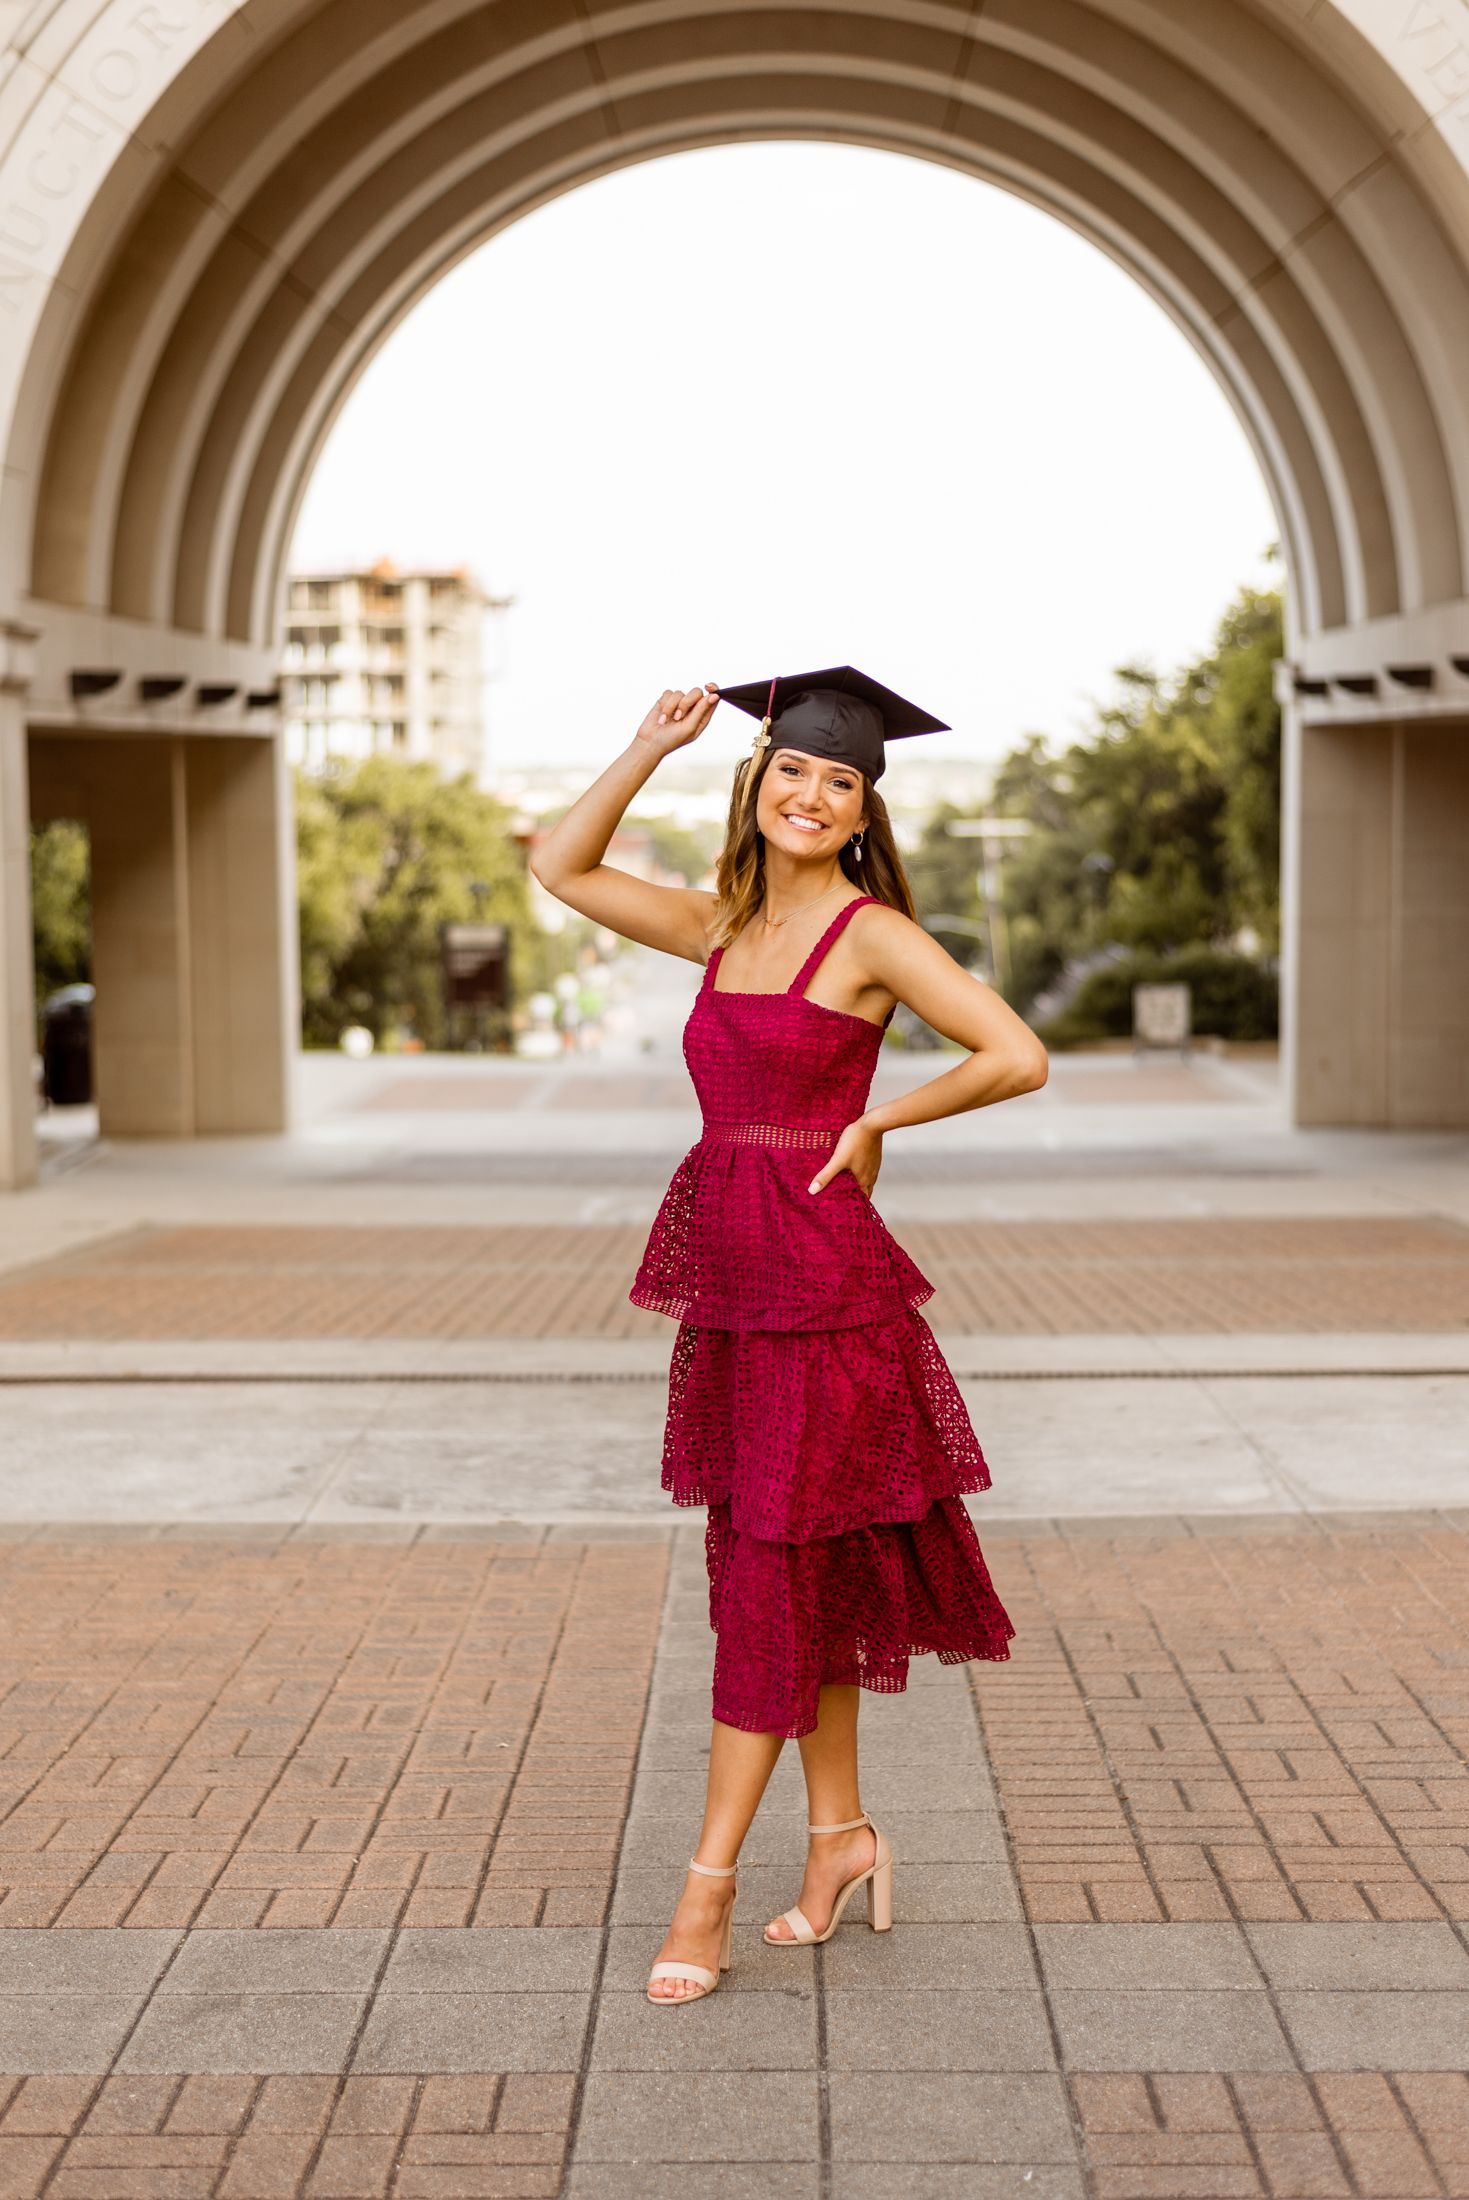 Senior photos by Simply Breezy Photography #graduationdresscollege